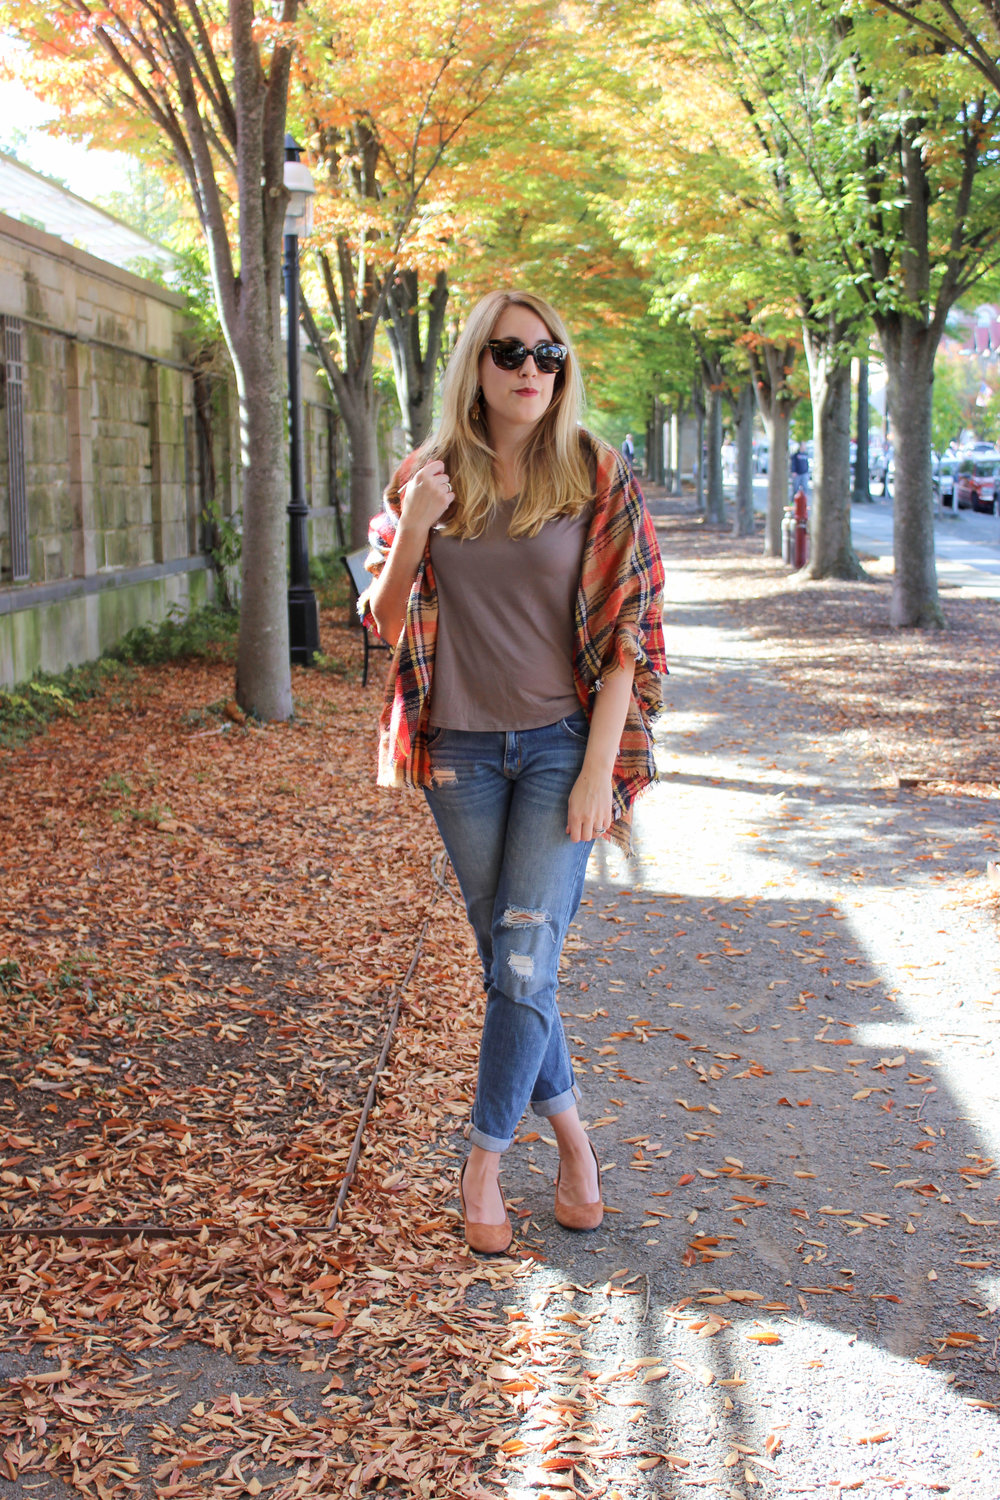 Styling a Wrap for Fall Weather